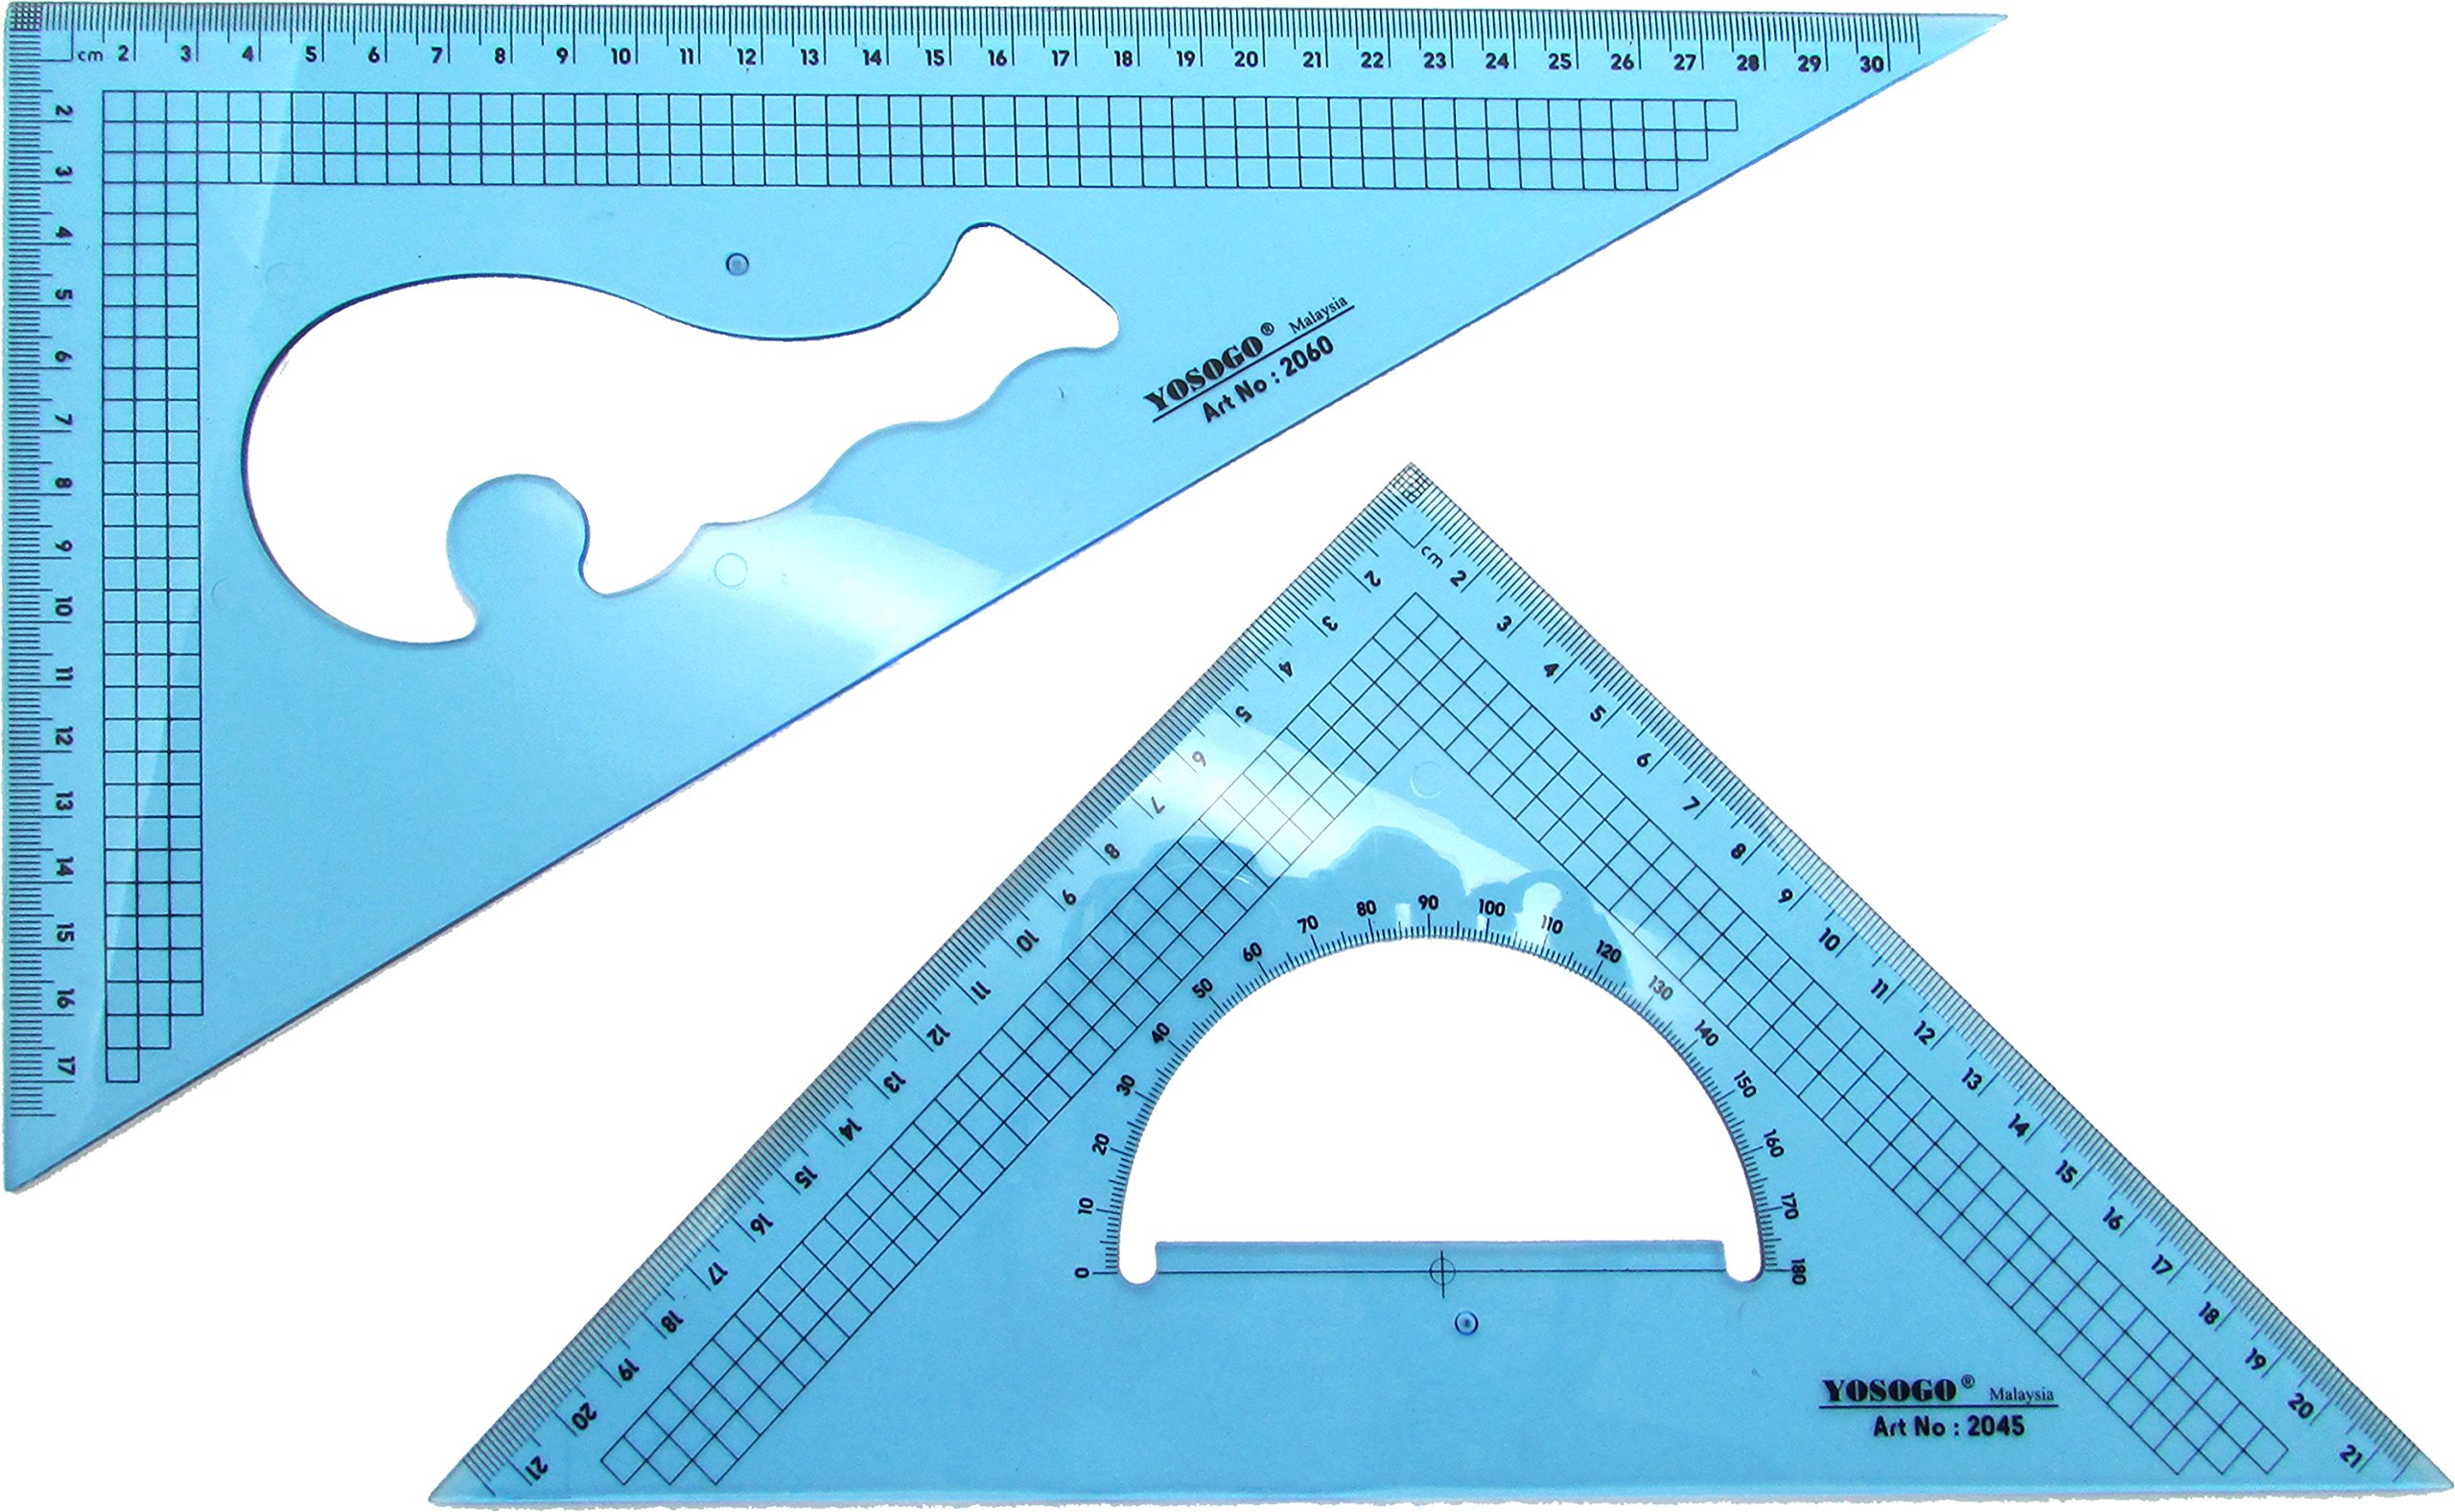 Set of 2 Large Triangle Ruler Set Square: 12 Inch (30 cm) 30/60 Degree & 9 inch (22 cm) 45/90 Degree (CM Scale) by Yosogo